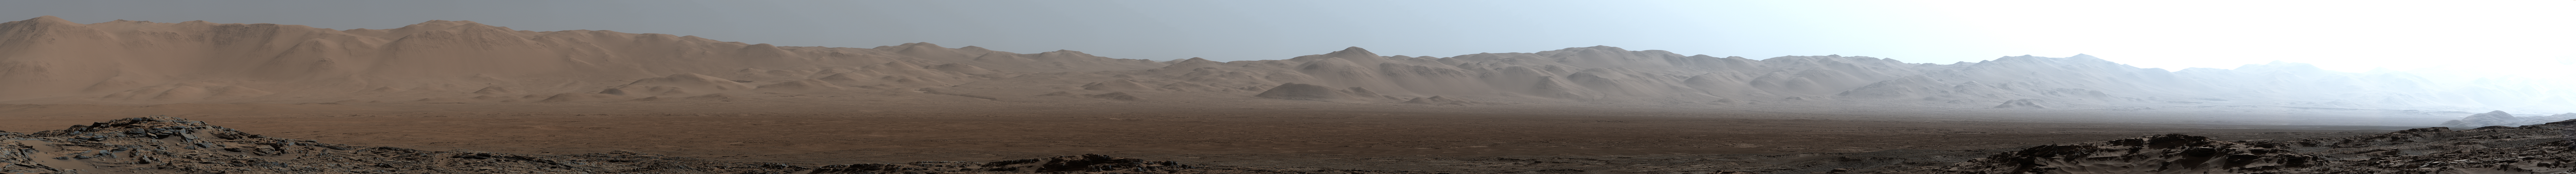 Image of Northern Portion of Gale Crater Rim Viewed from 'Naukluft Plateau'